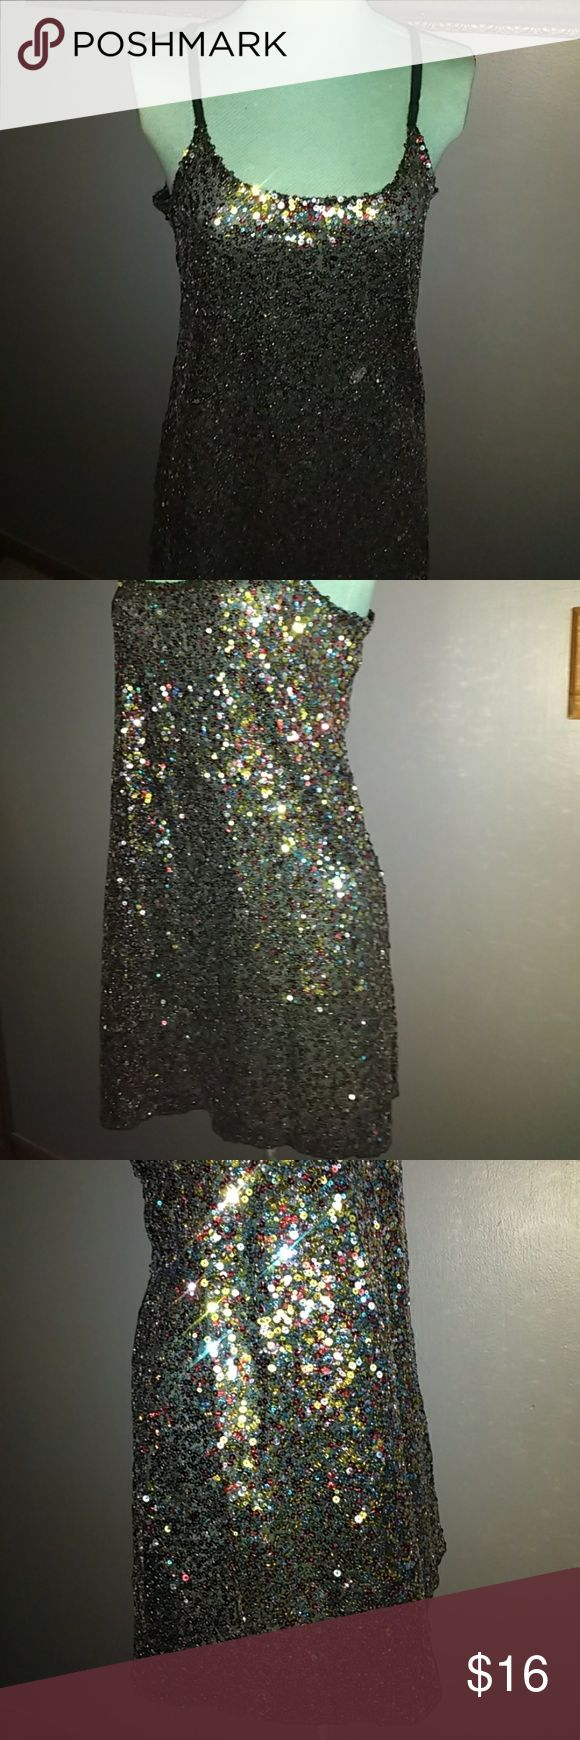 "Free People Sequin Tunic Polyester tunic with multiple colors sequin design style black adjusting straps scoop neckline in front and back all sequins in place easy to dress up or down is 29"" long and 19 1/2"" across from armpit to armpit Free People Tops"